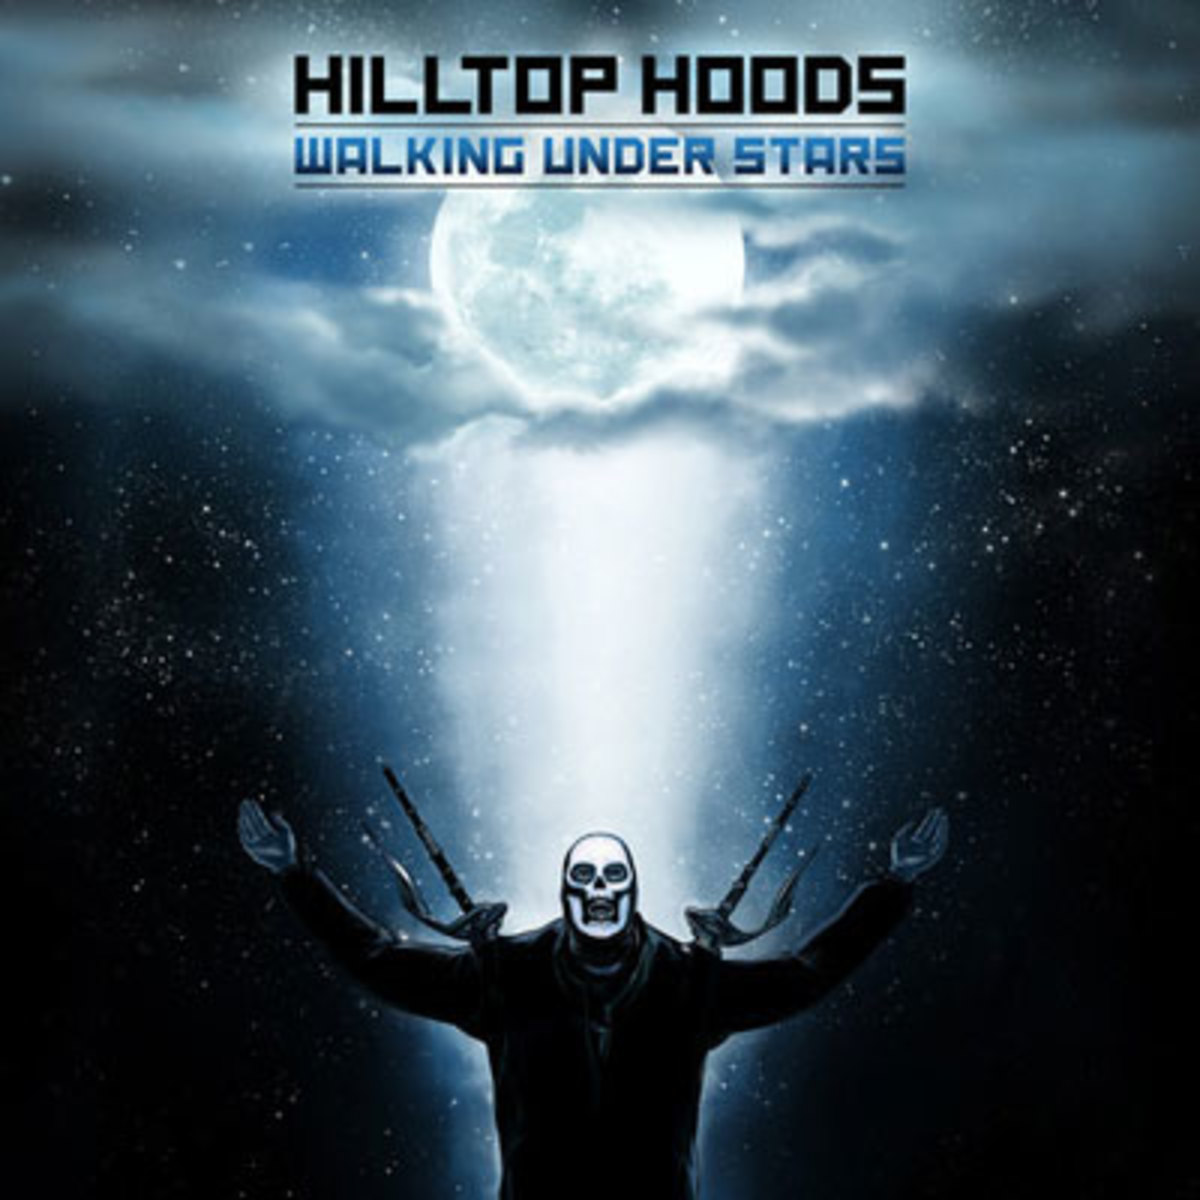 hilltophoods-walkingstars.jpg